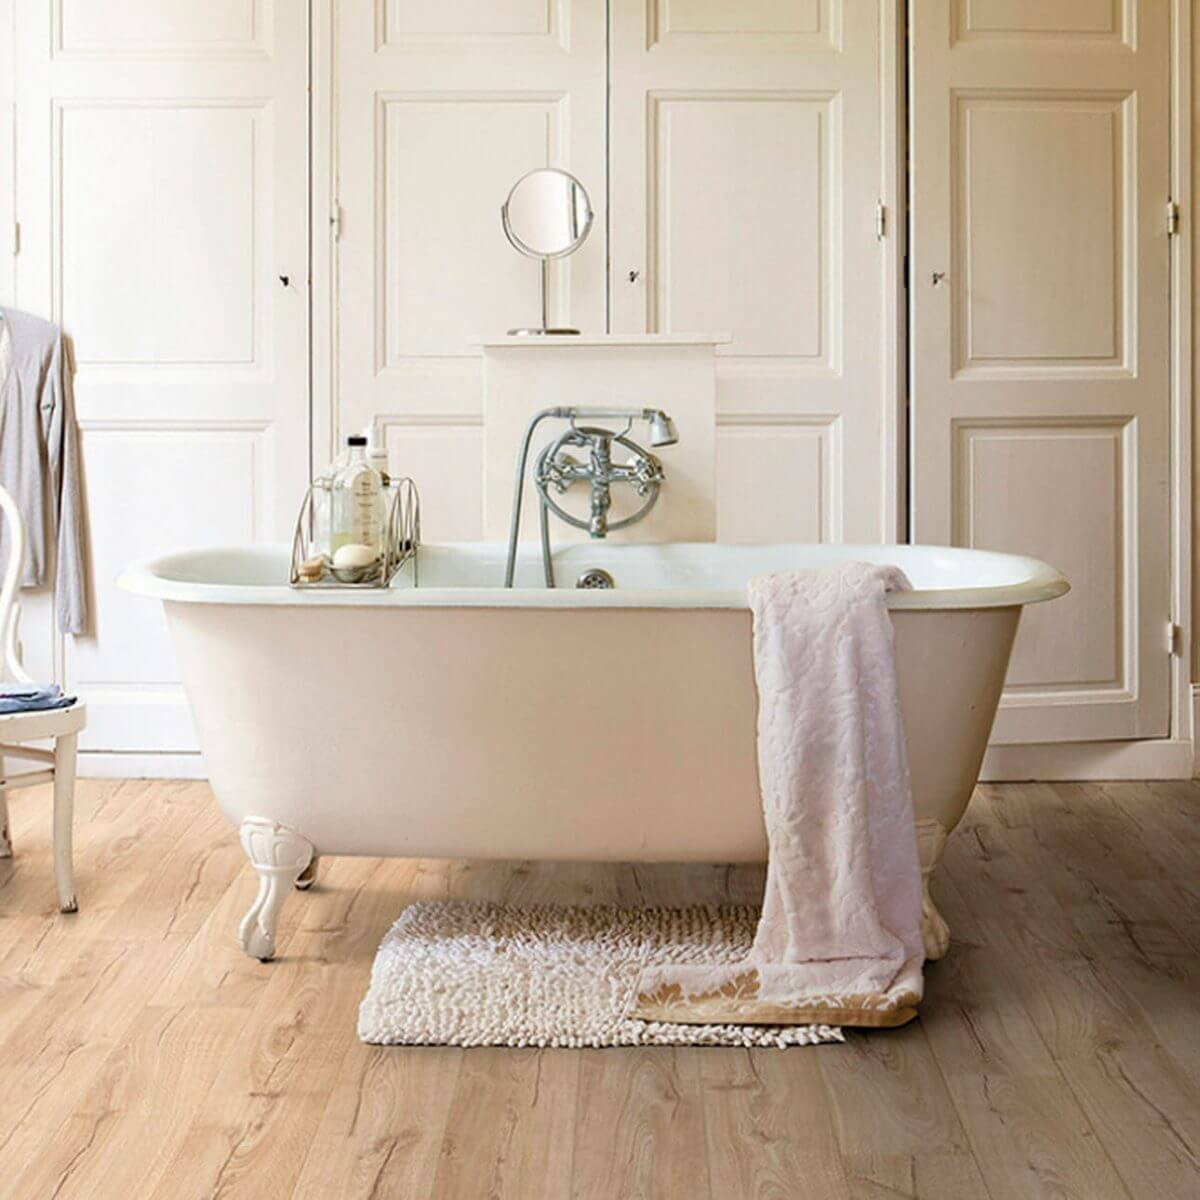 Laminate vs engineered flooring pros and cons - Laminate flooring pros and cons ...